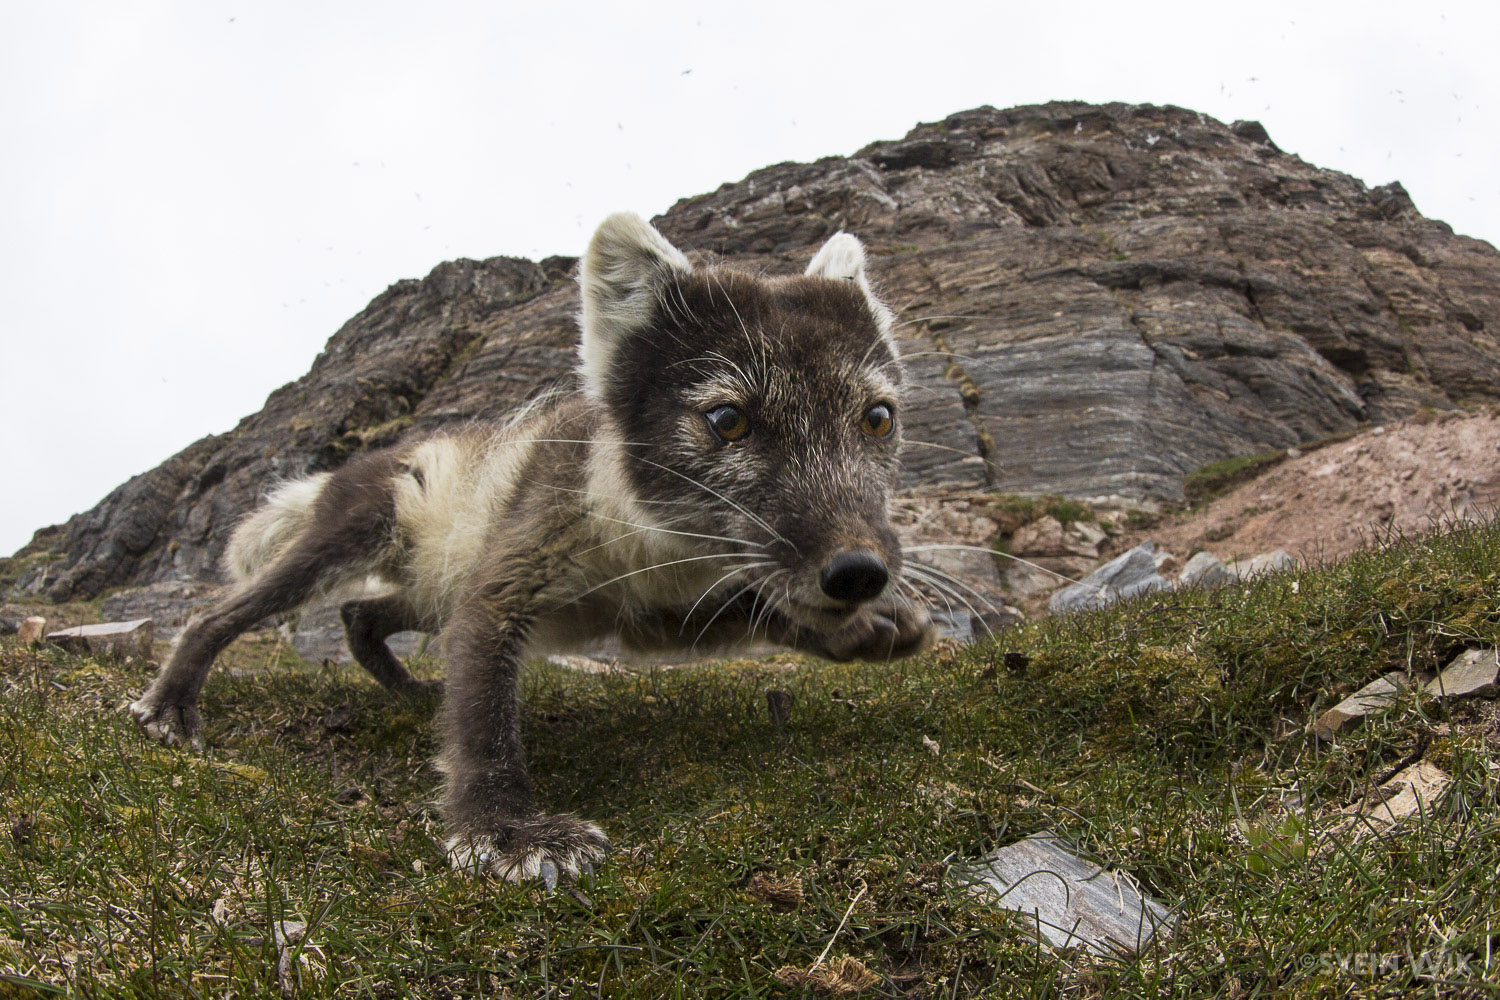 Arctic Fox wideangel by bird cliff.jpg